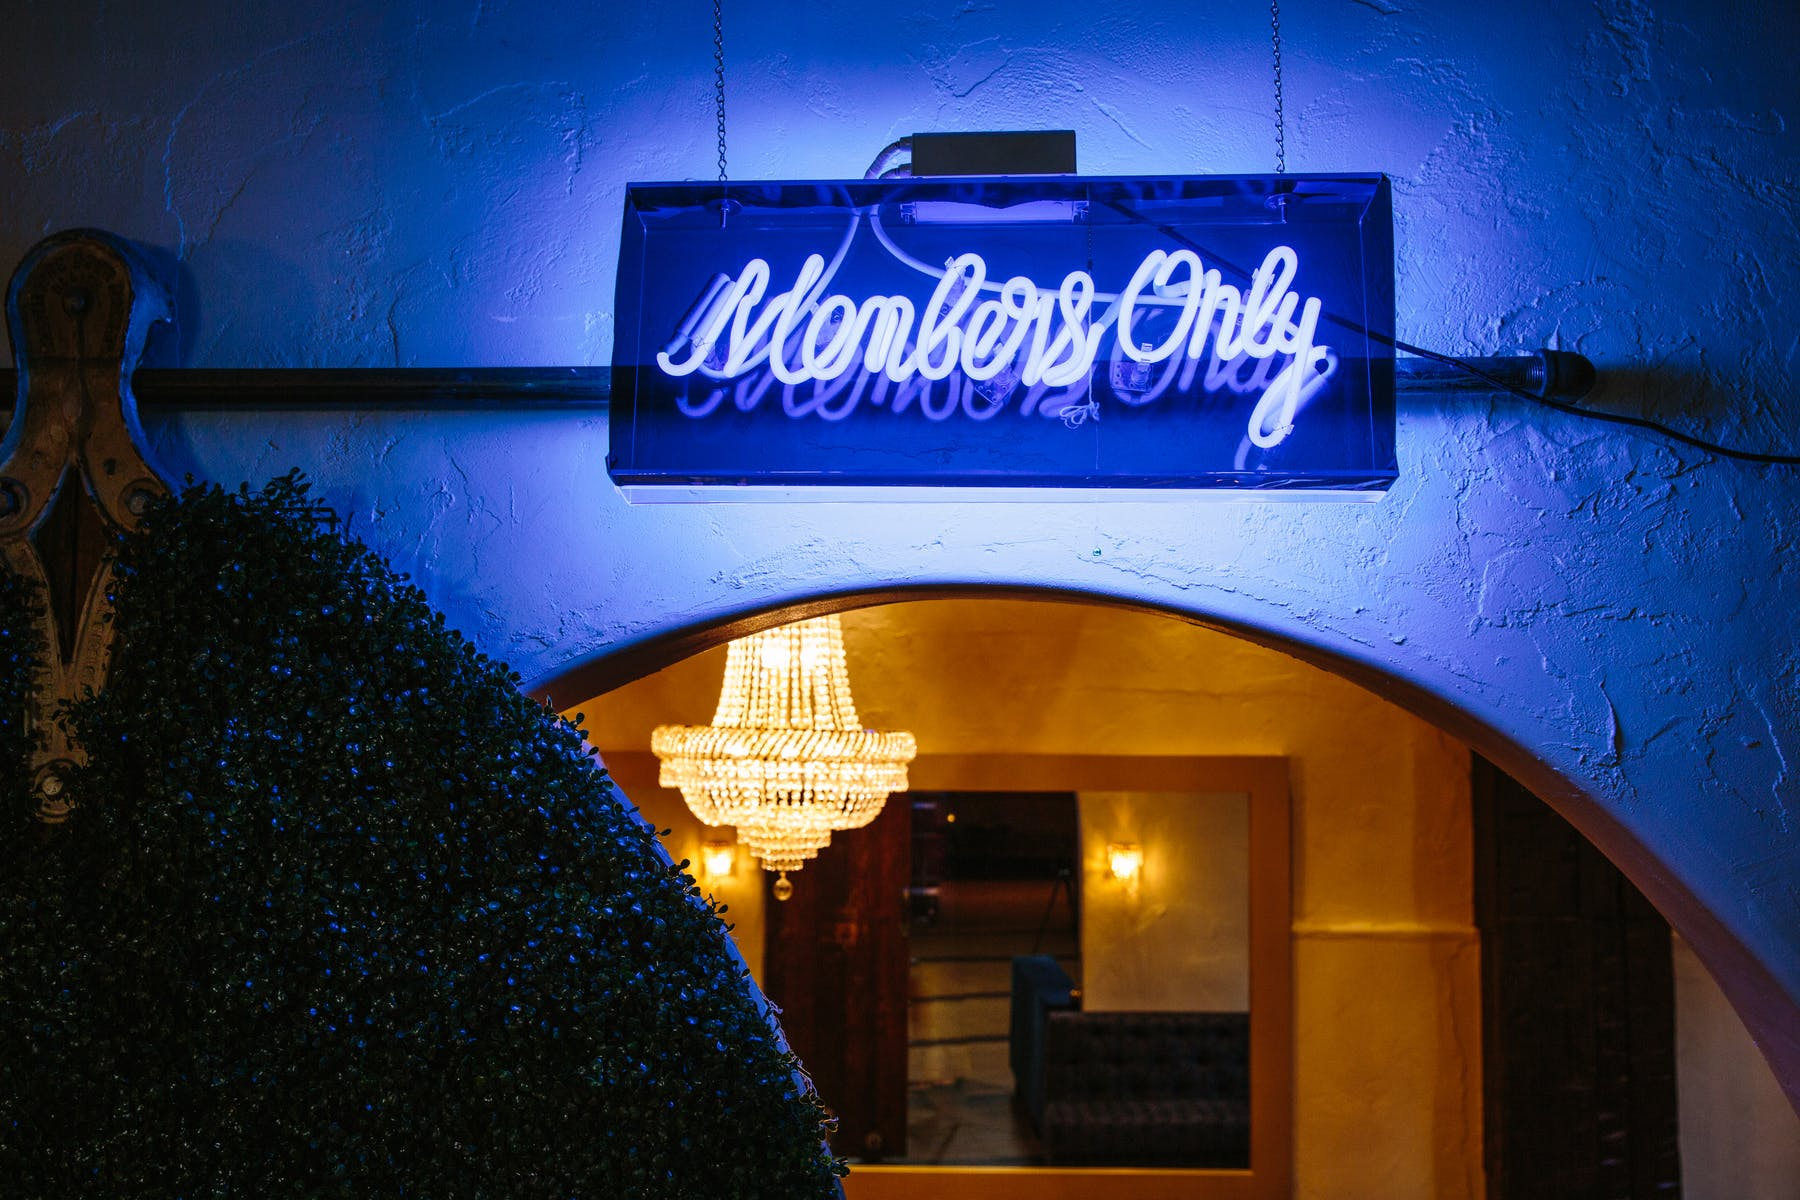 a blue neon sign above a bar entrance